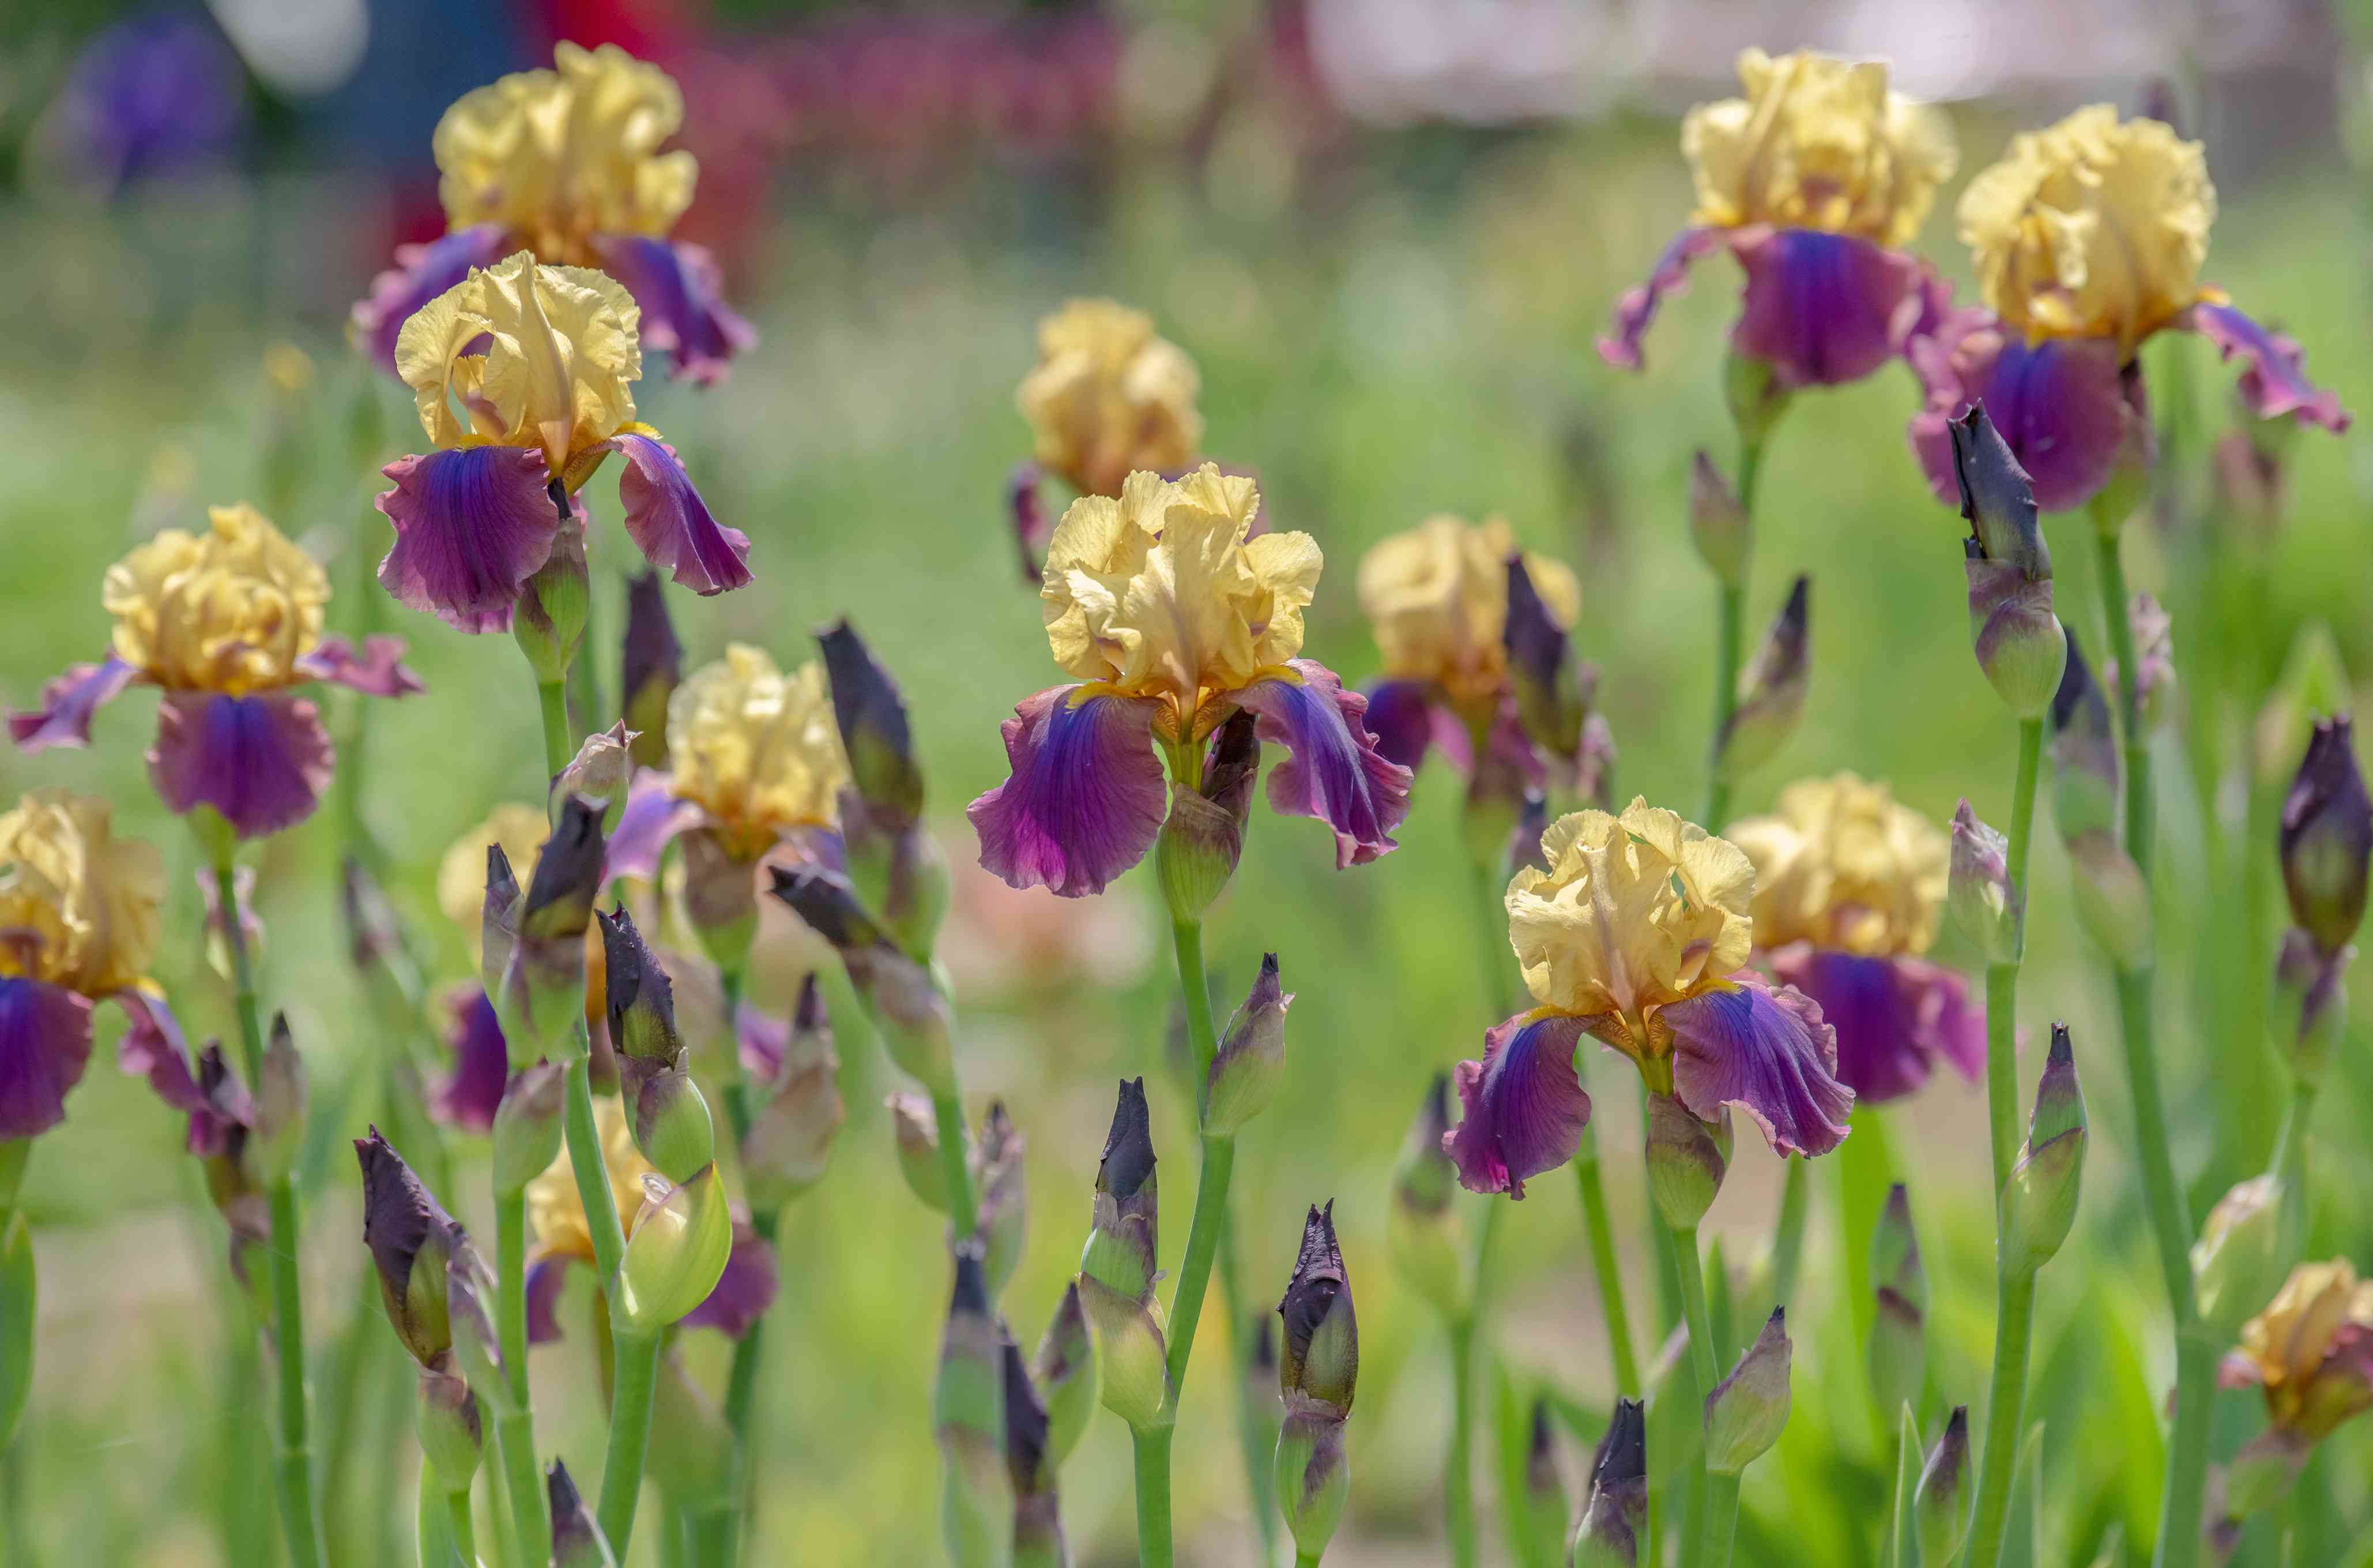 Iris flowers with yellow standard and purple fall petals and buds on tall thin stalks